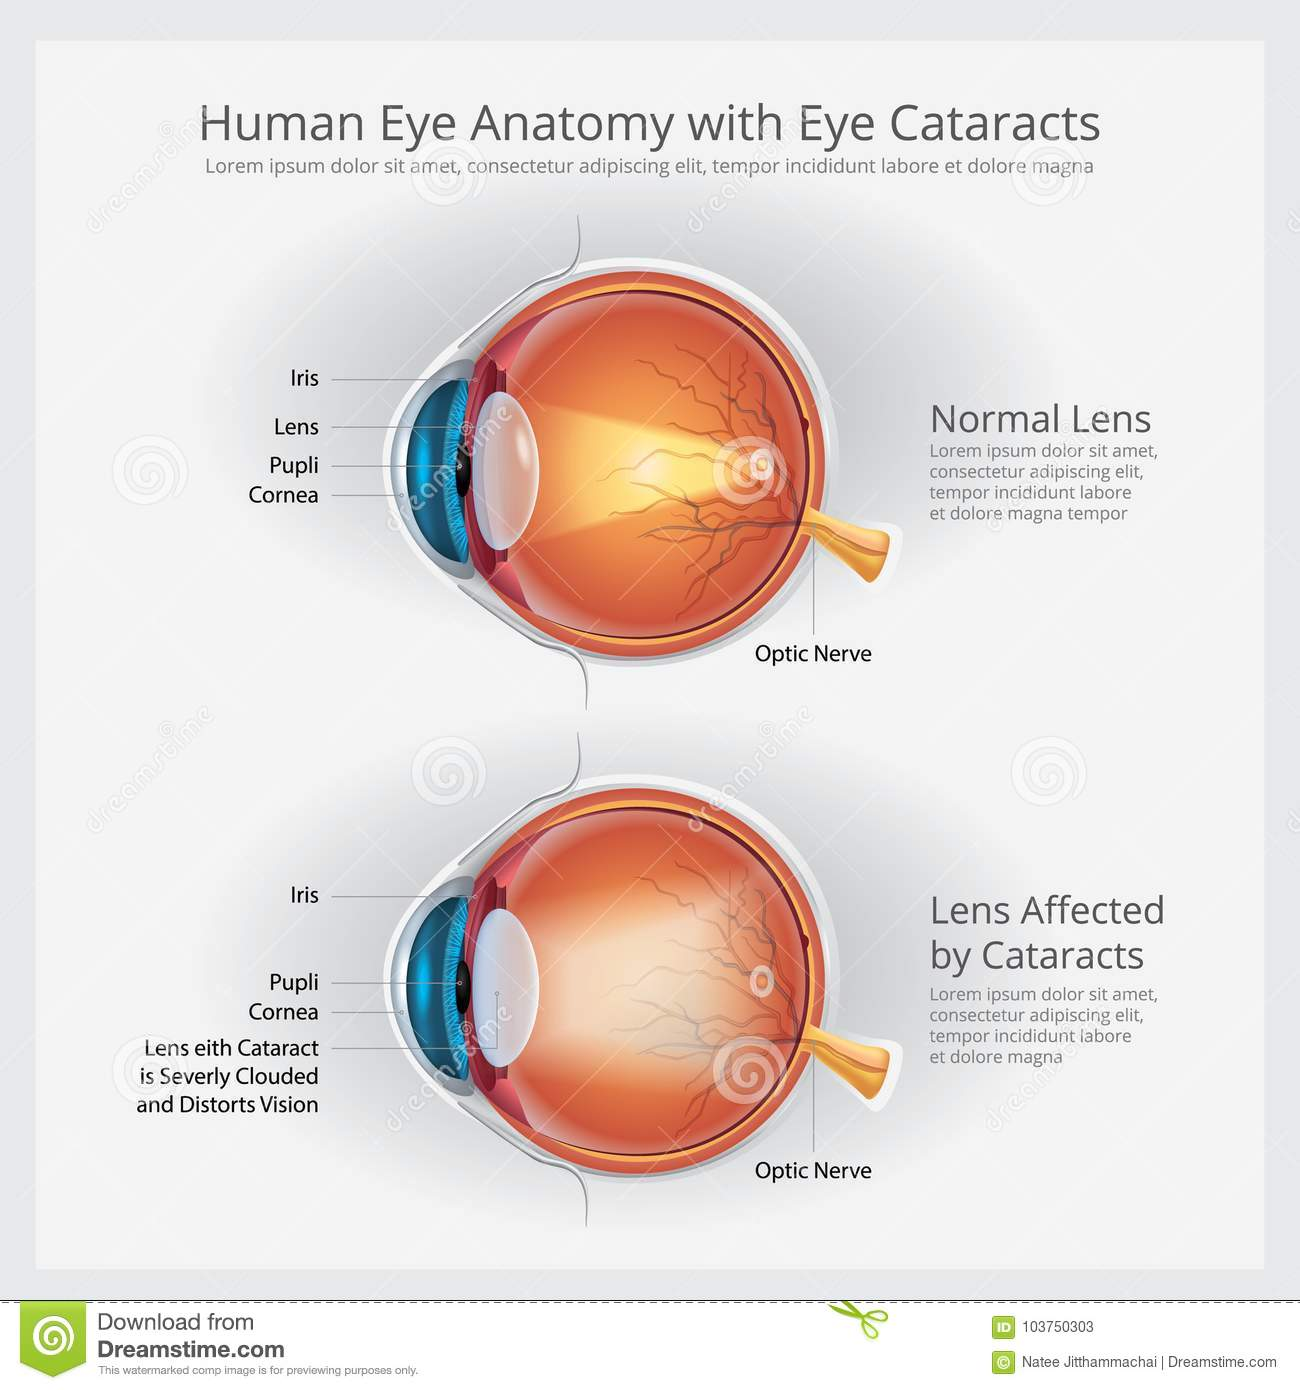 Cataracts Vision Disorder And Normal Eye Vision Anatomy Stock Vector ...